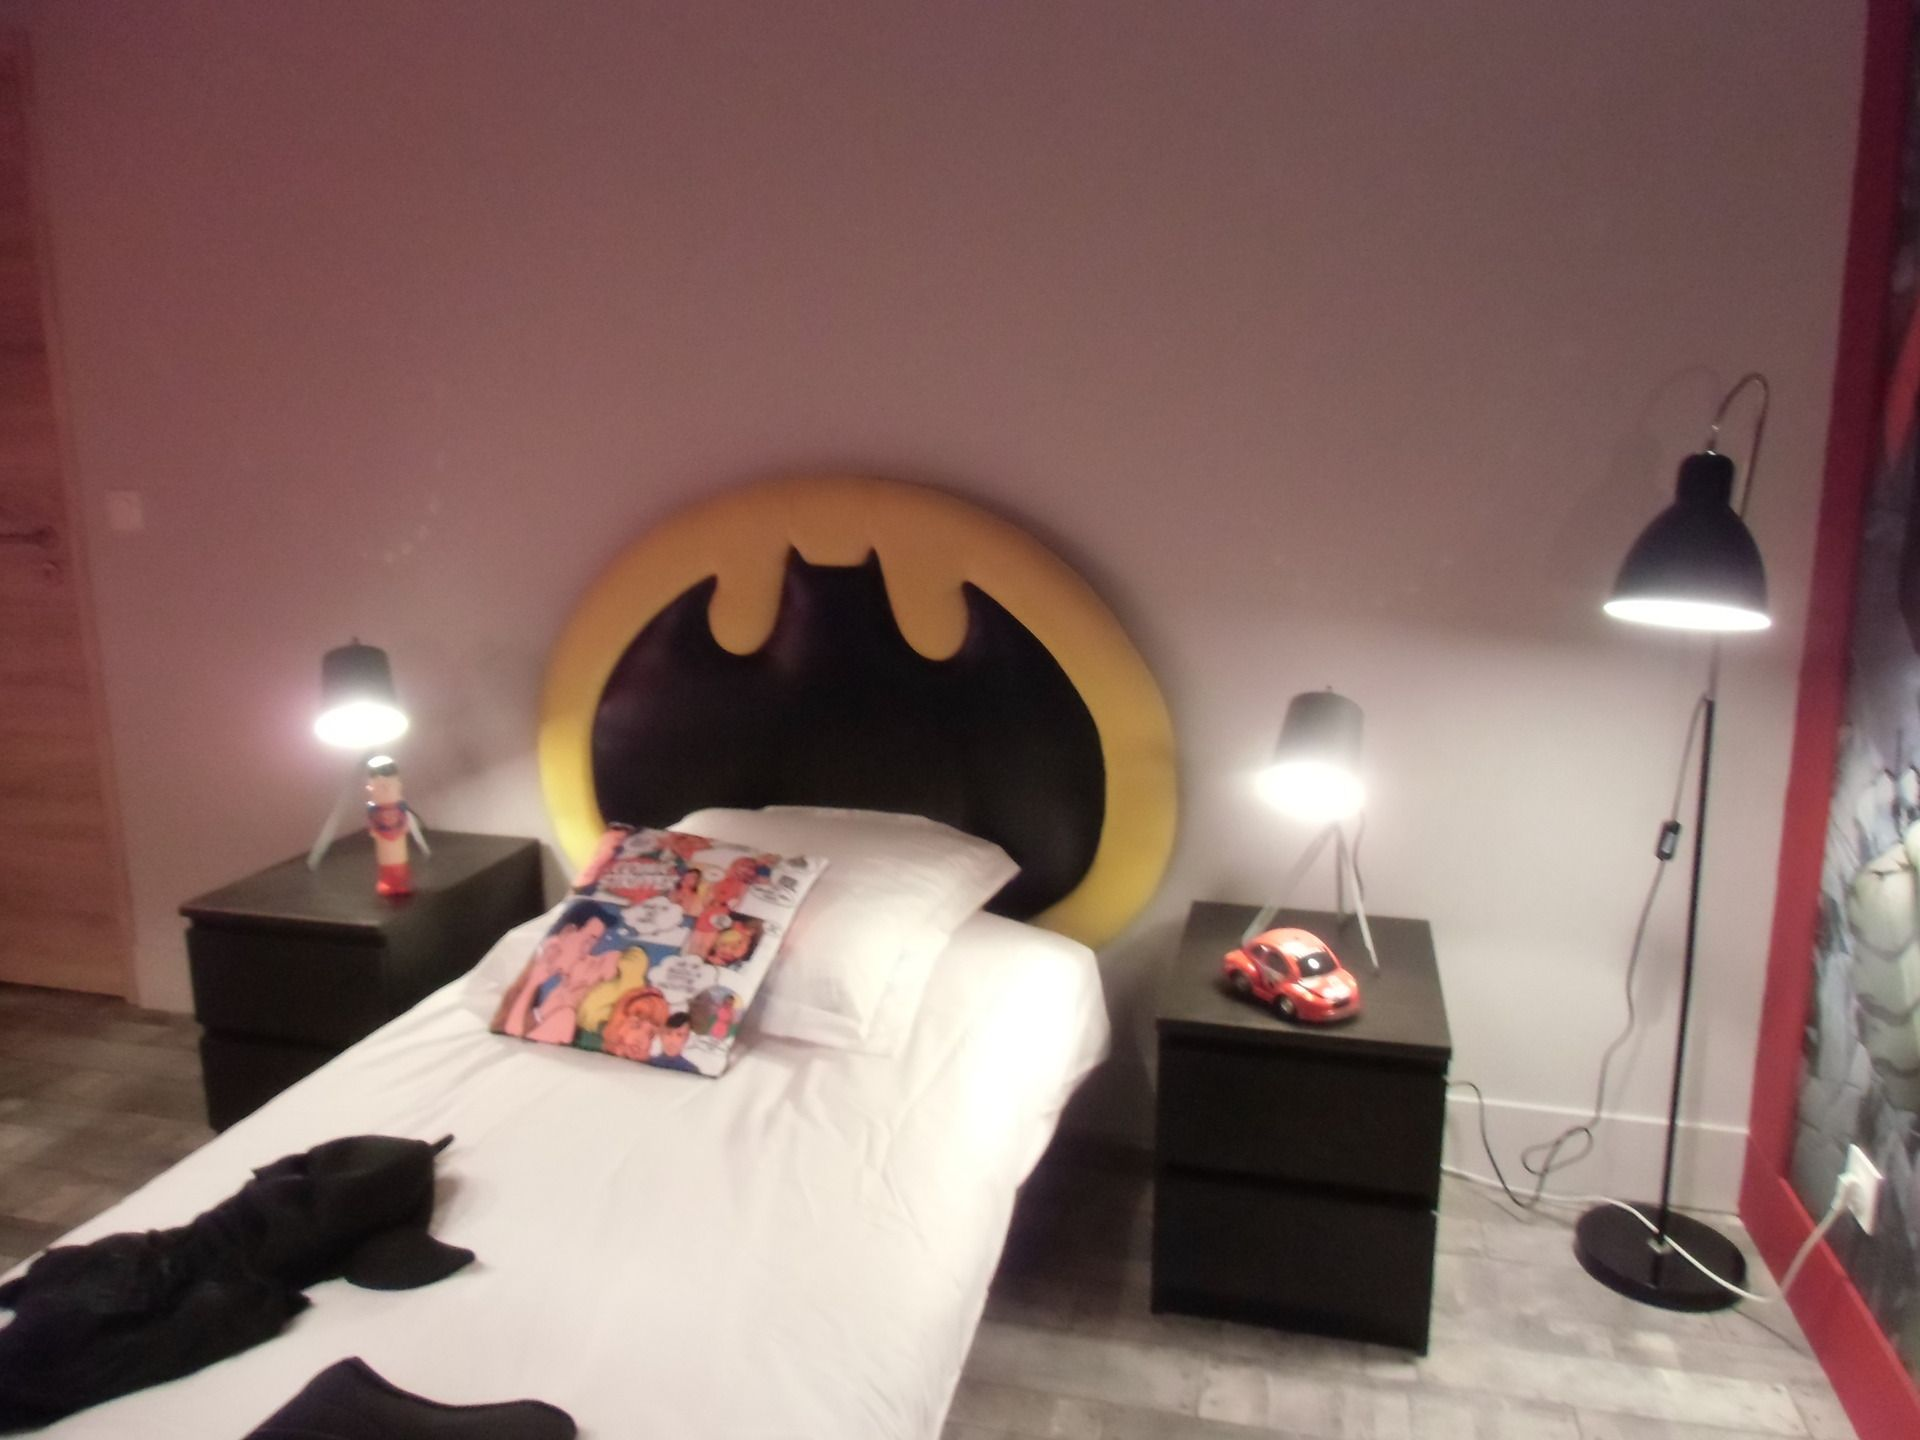 t te de lit batman lit enfant super h ros cr ation unique chambre d 39 enfant de b b par. Black Bedroom Furniture Sets. Home Design Ideas